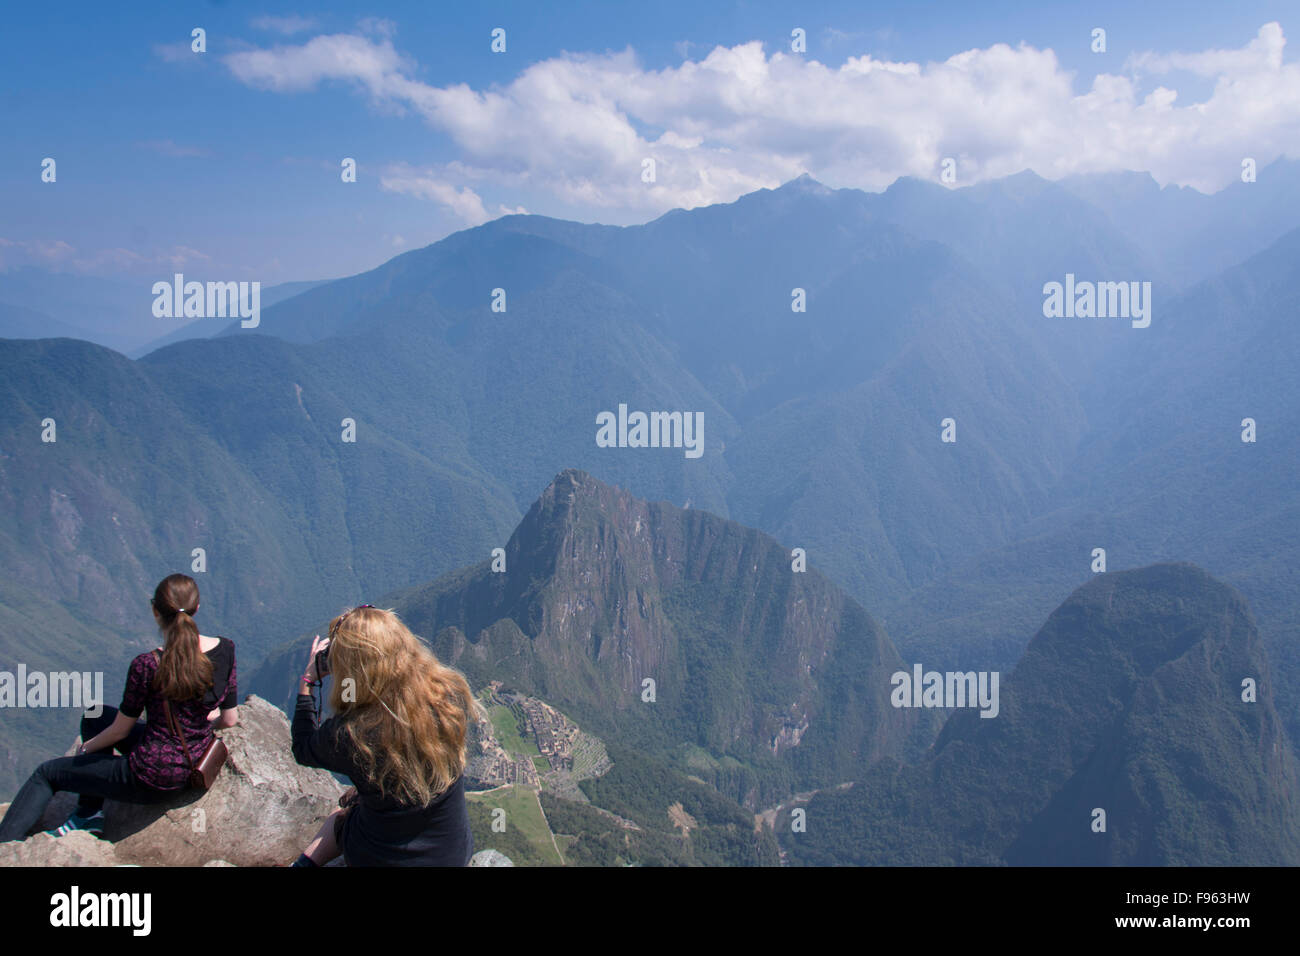 Travellers at the high vantage point of Montana Machu Picchu, Peru - Stock Image